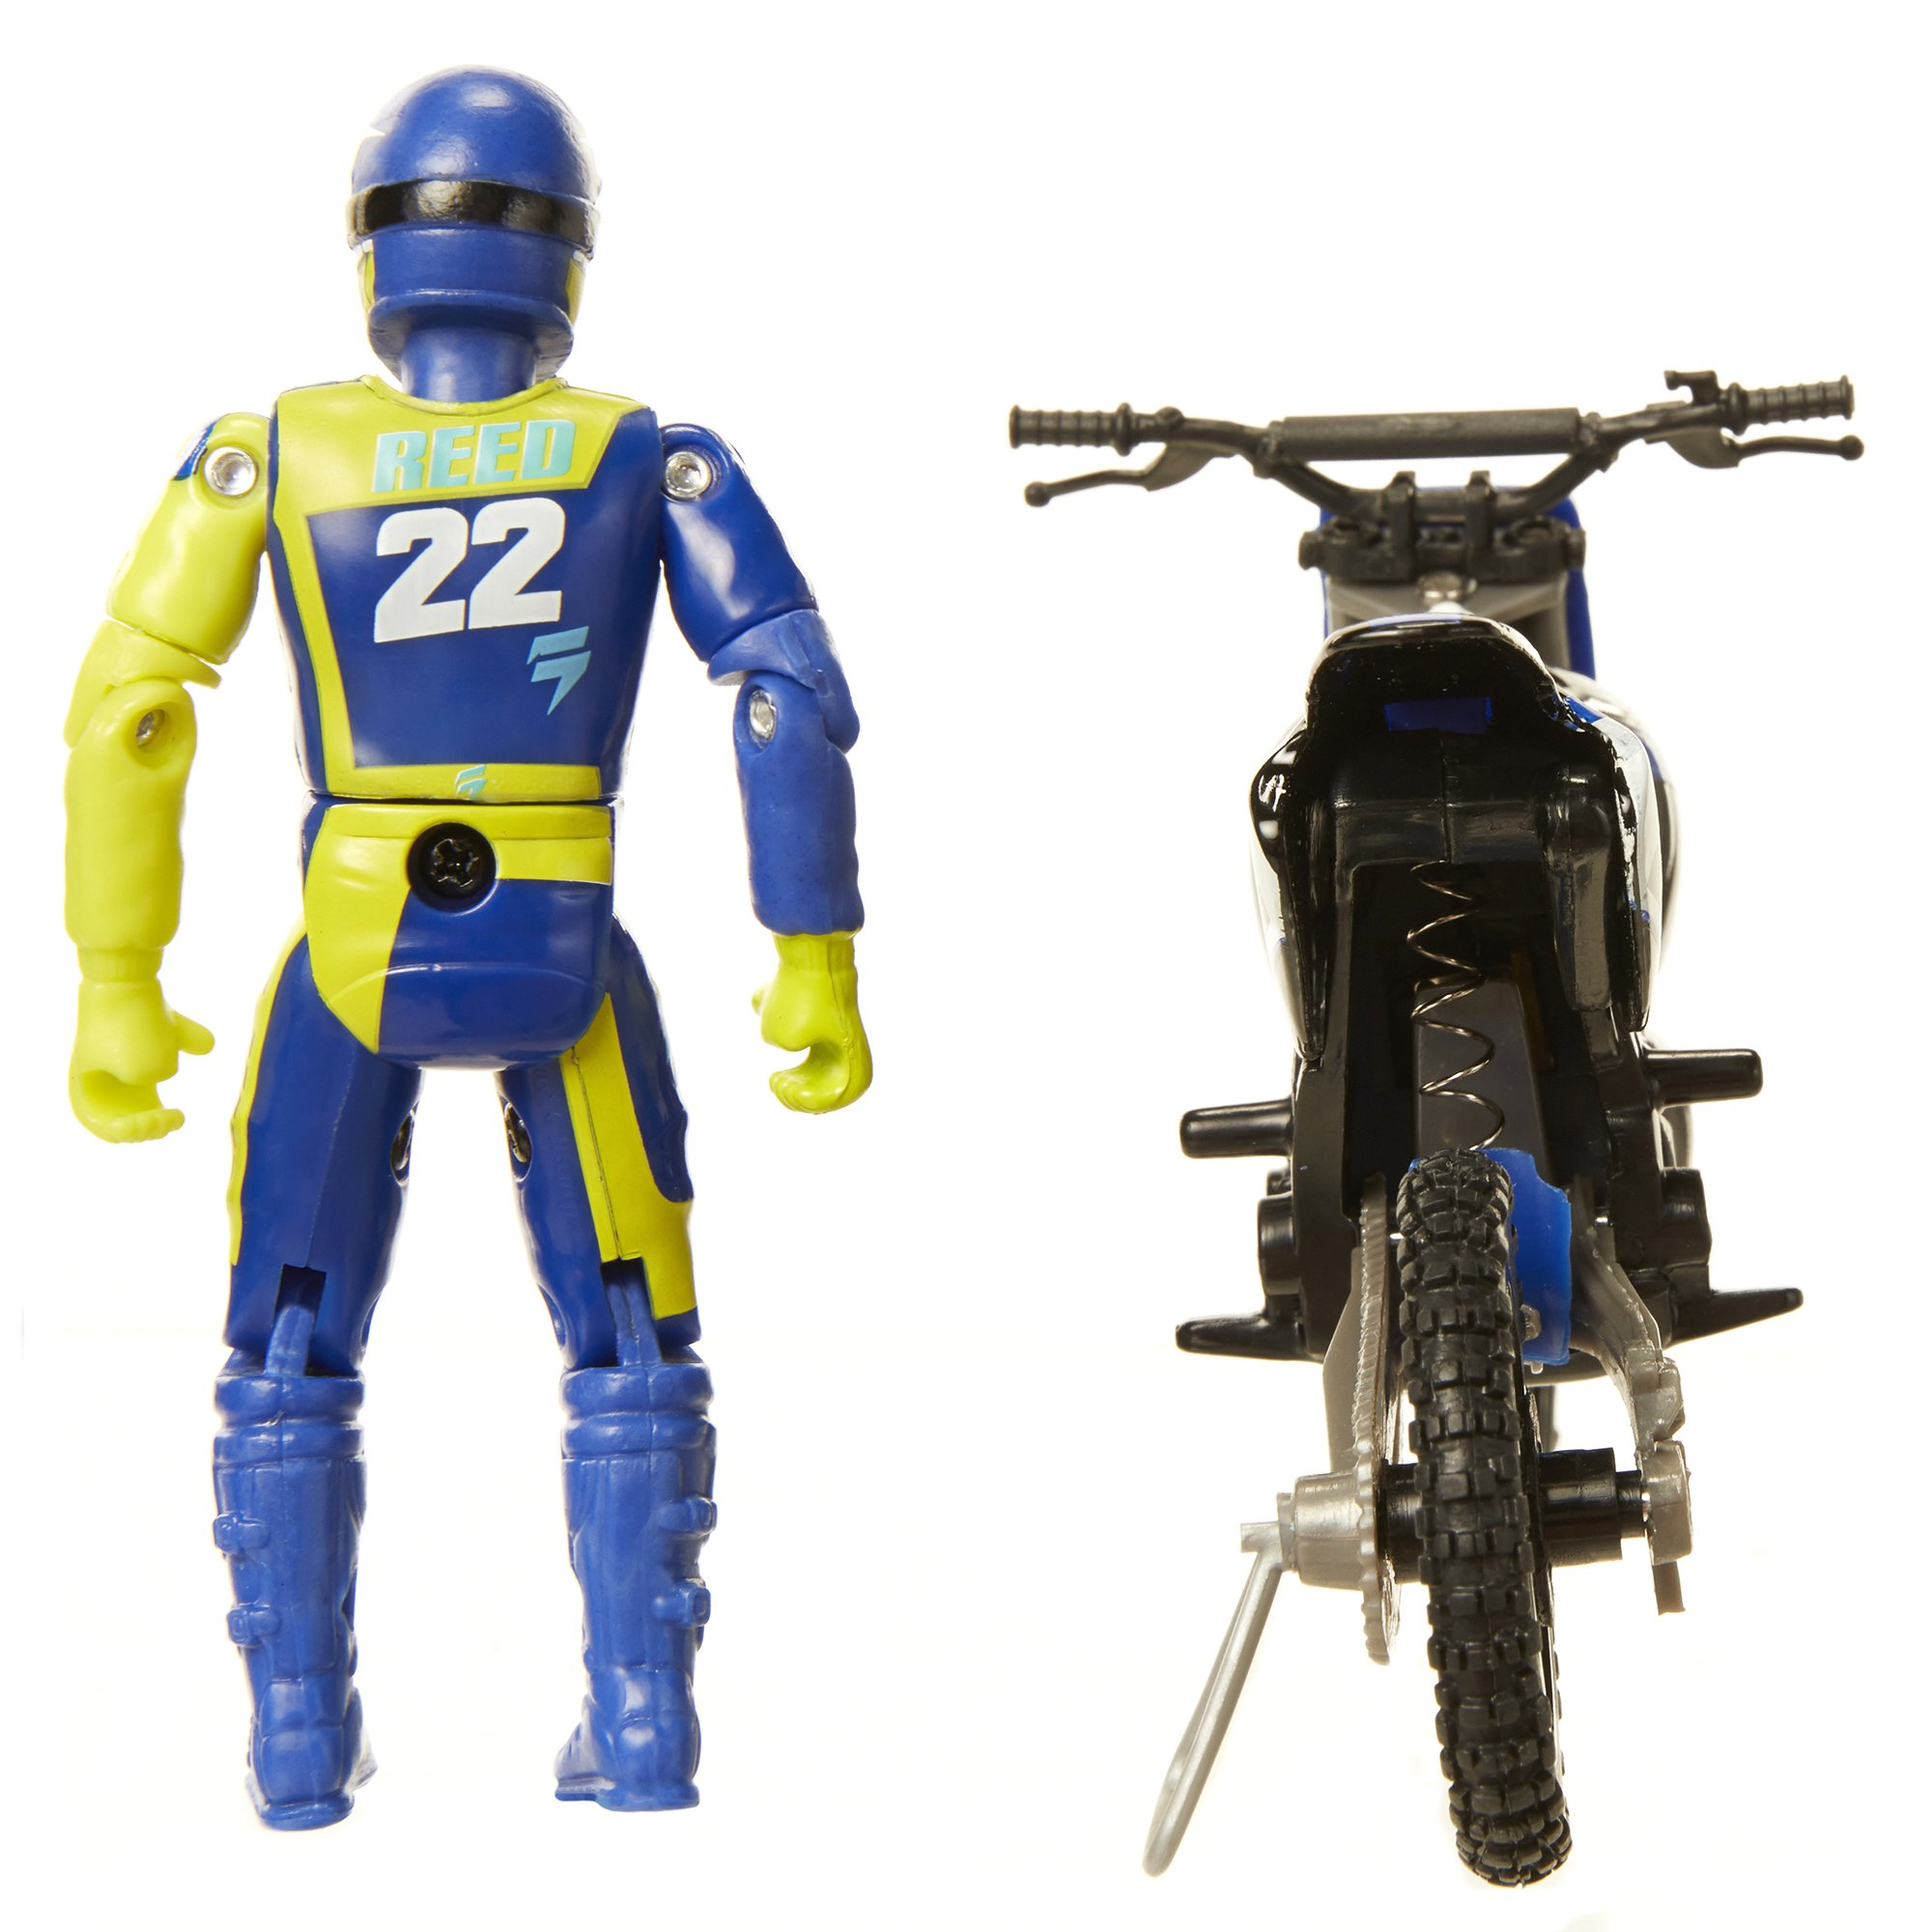 MXS Boys Chad Reed SFX Bike & Rider Set by MXS (Image #8)